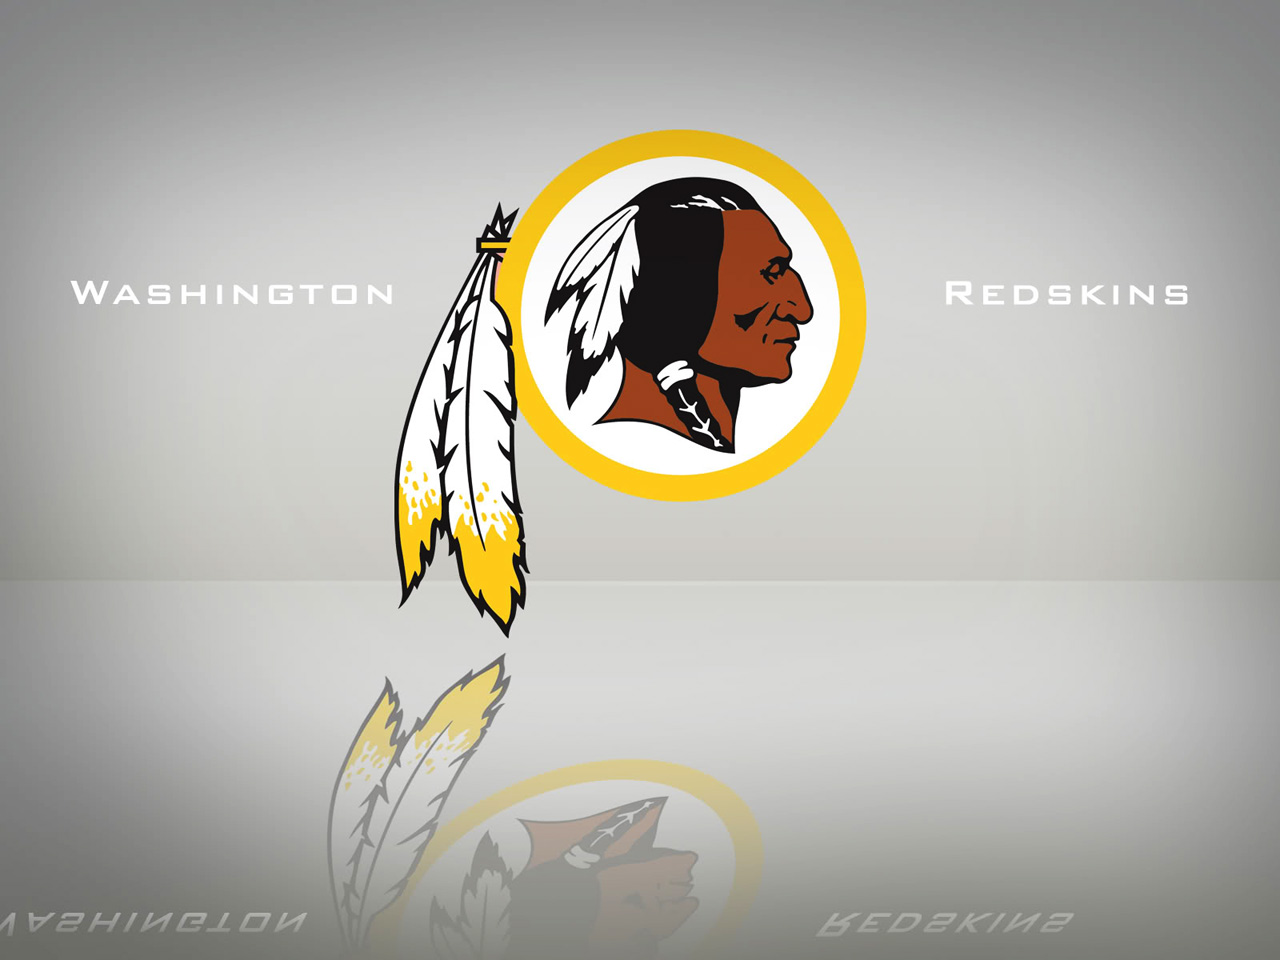 Washington Redskins wallpapers Washington Redskins background 1280x960